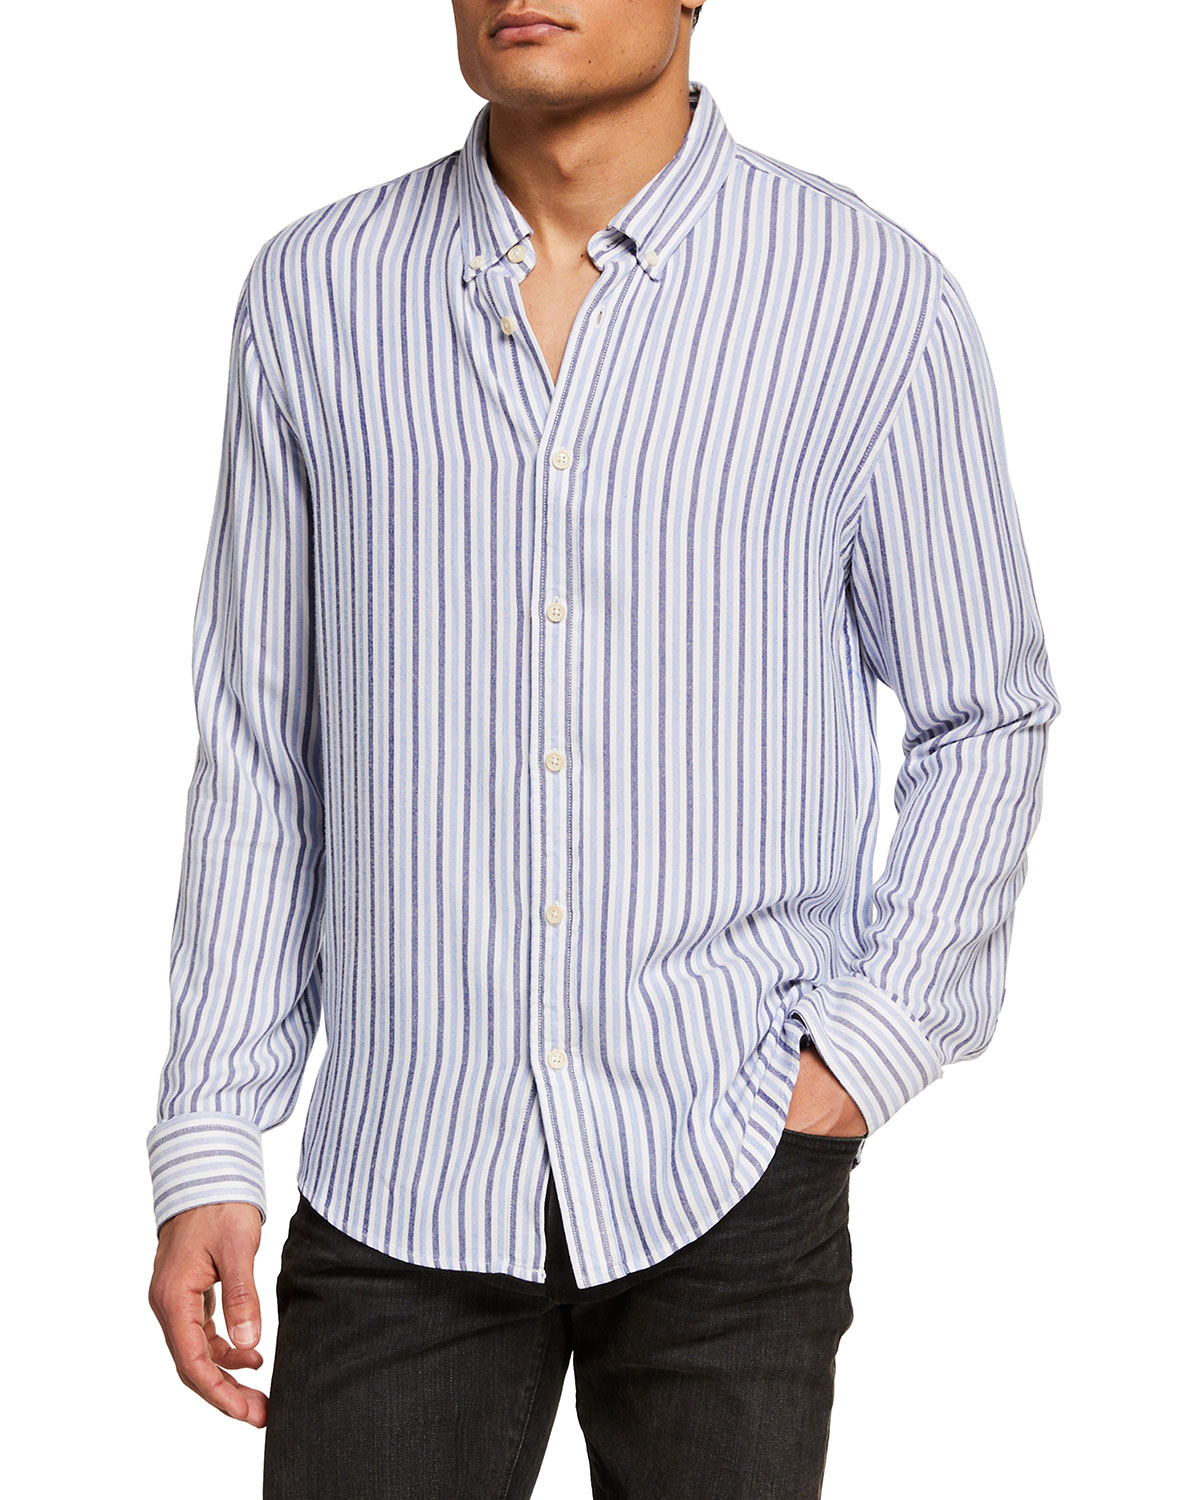 Scotch & Soda Men's Lightweight Striped Sport Shirt